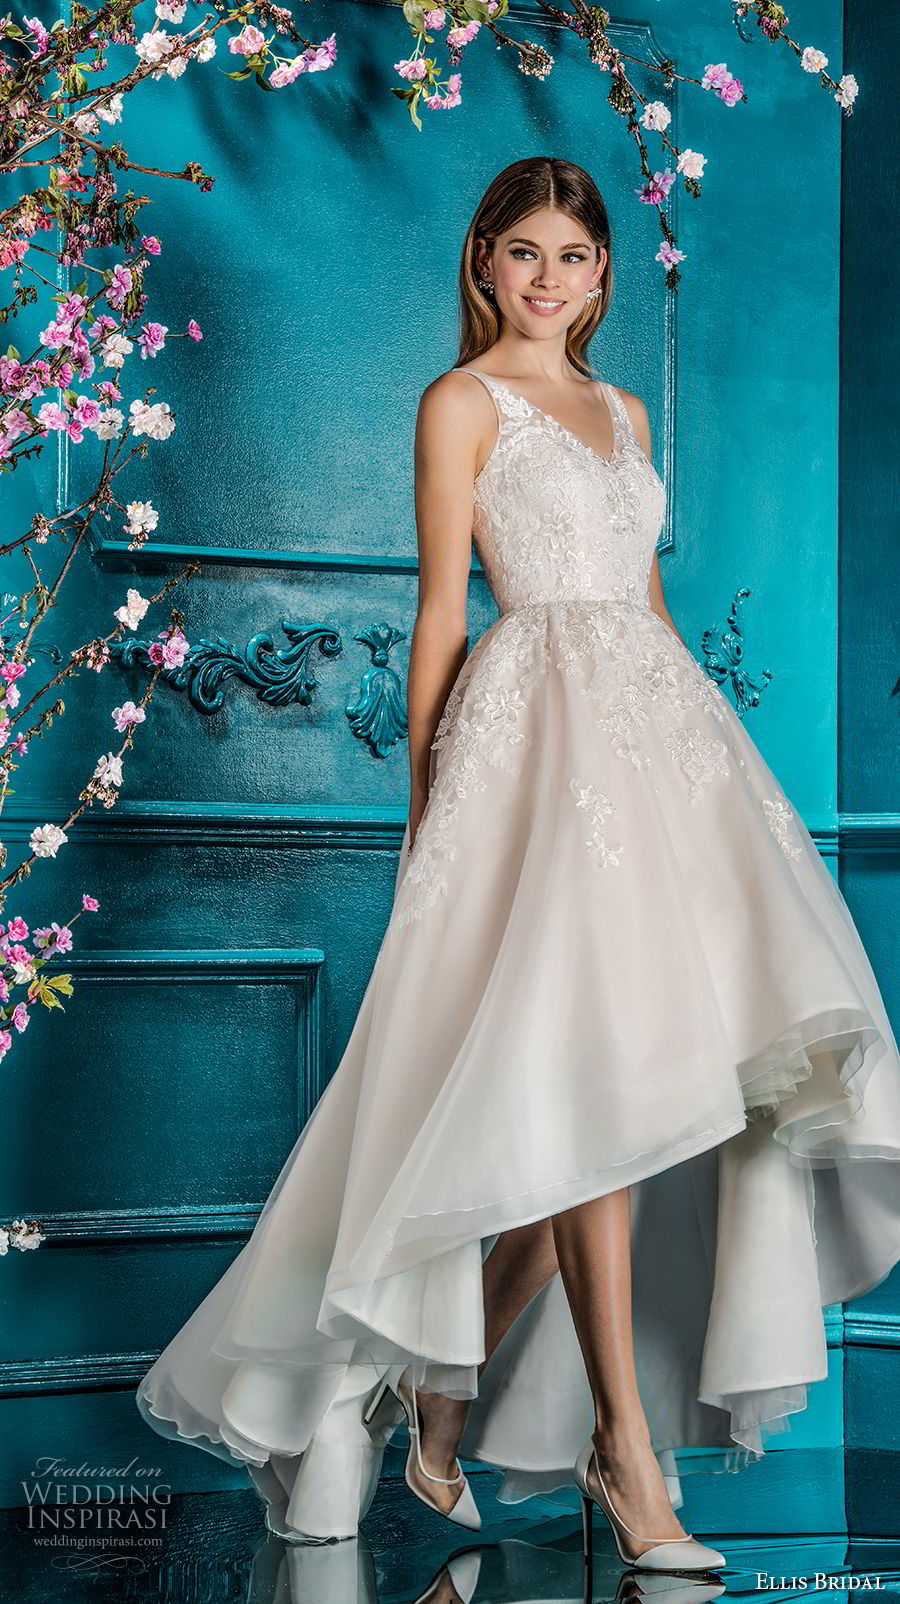 Trubridal Wedding Blog | 2018 Wedding Dresses Archives - Page 3 of 6 ...